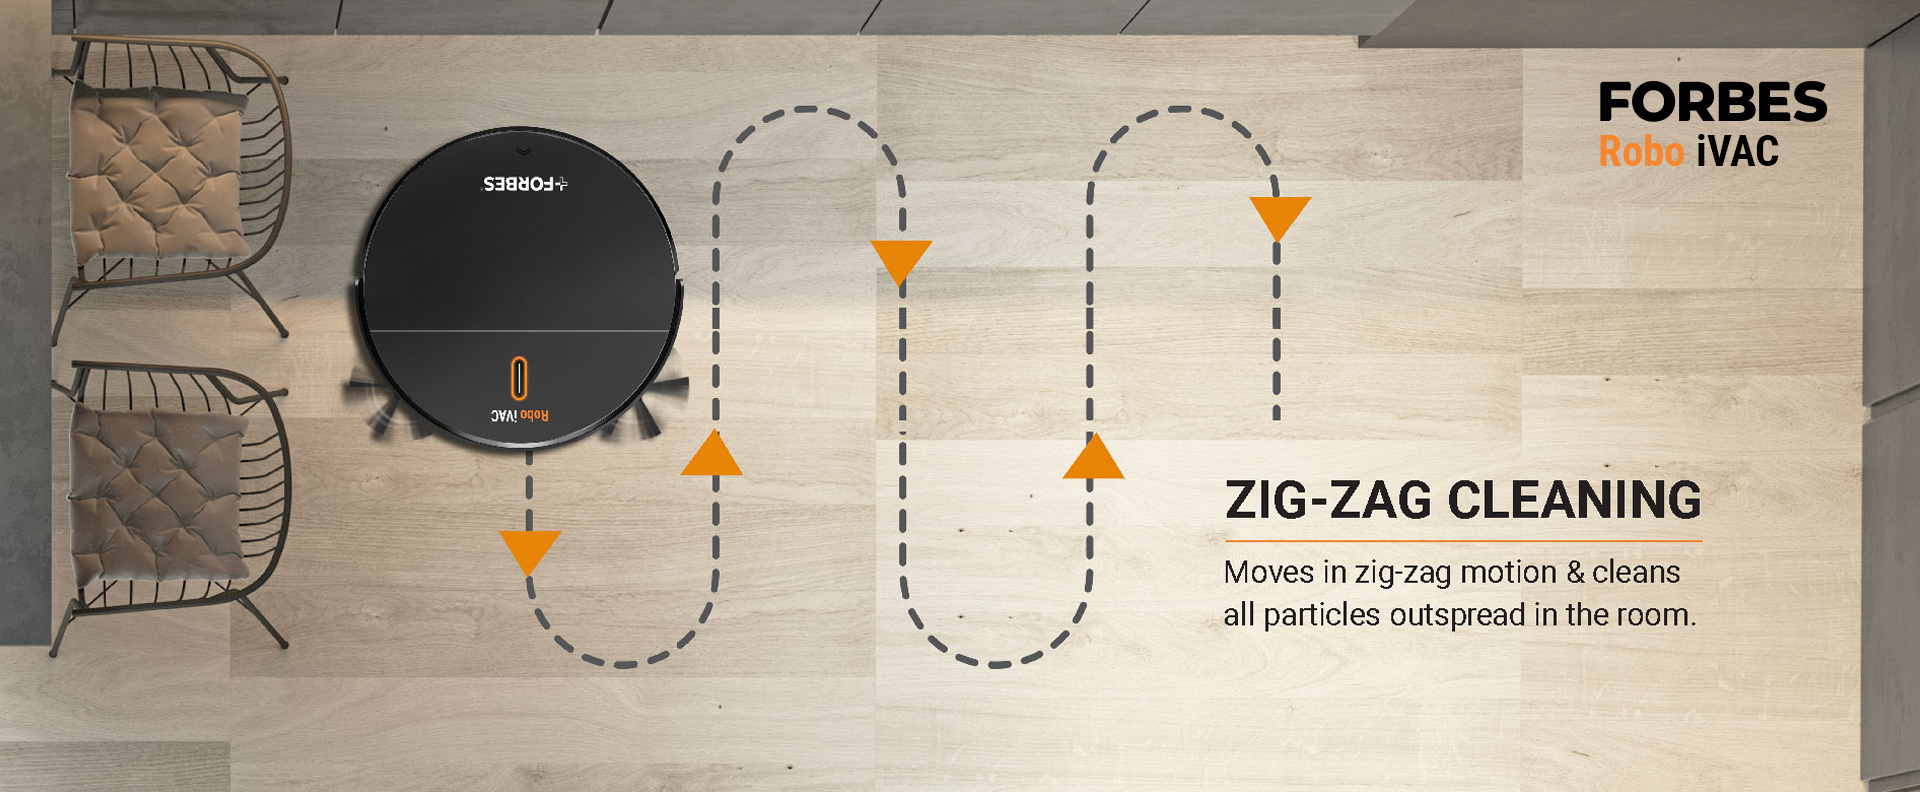 Moves in zig-zag motion & cleans all particles outspread in the room.